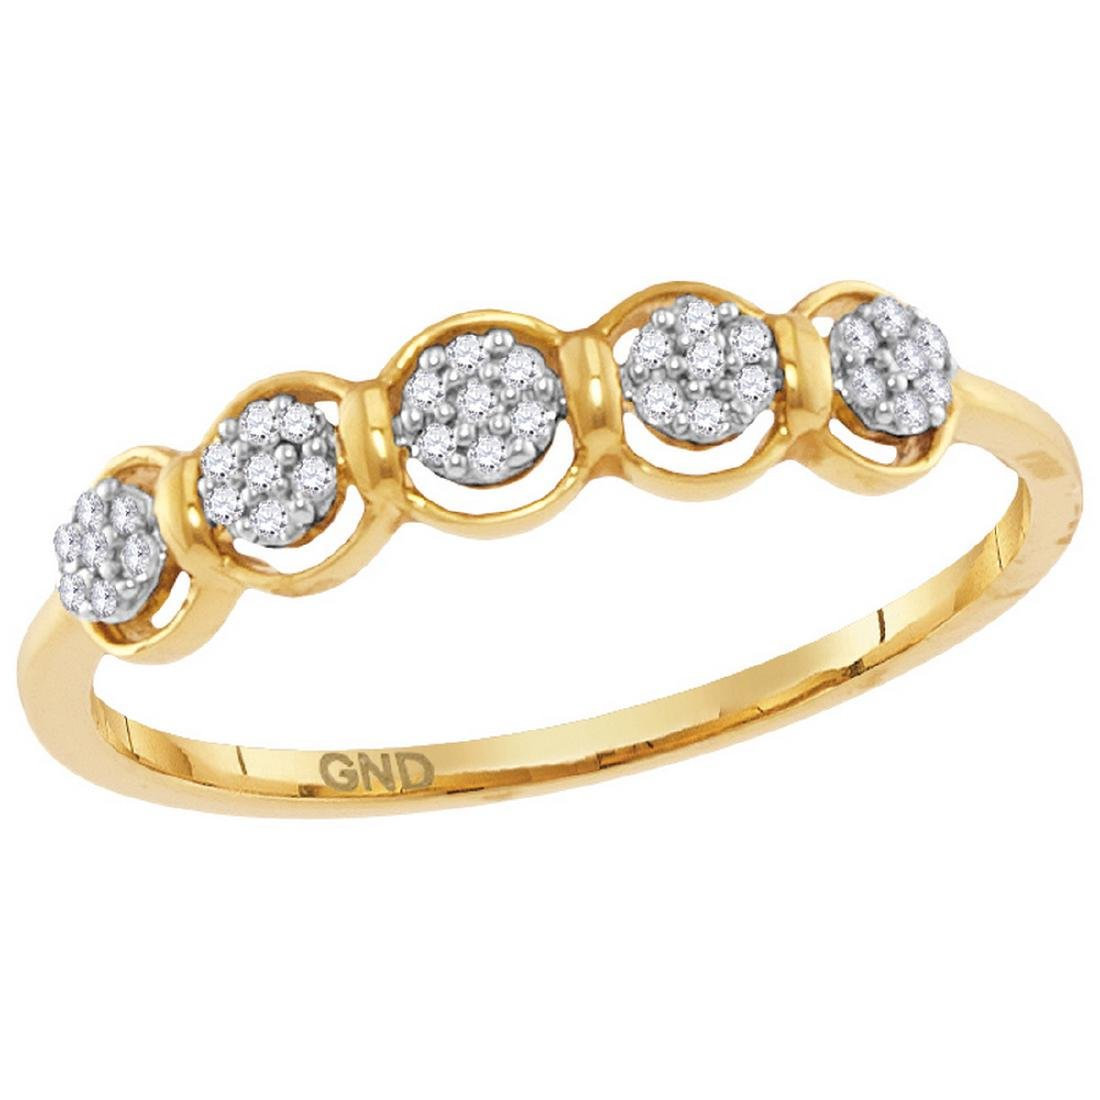 0.10 CTW Diamond Cluster Ring 10KT Yellow Gold -